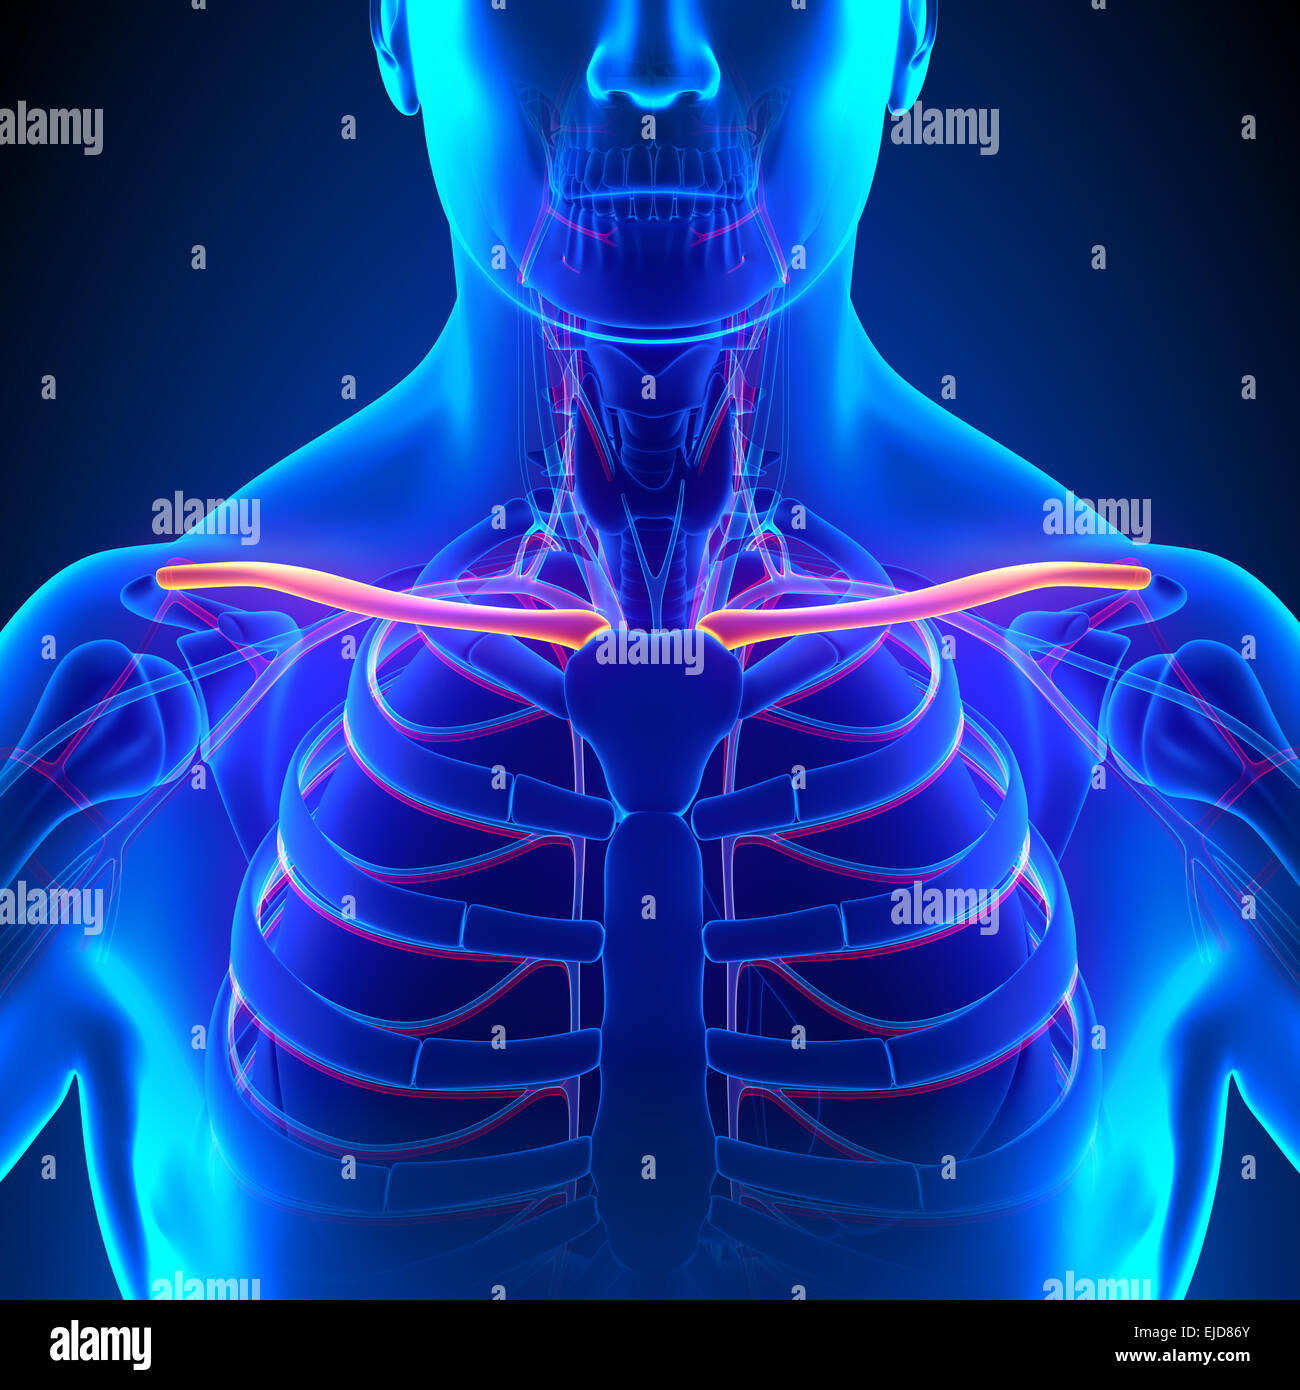 Clavicle Bone Anatomy With Circulatory System Stock Photo 80197123